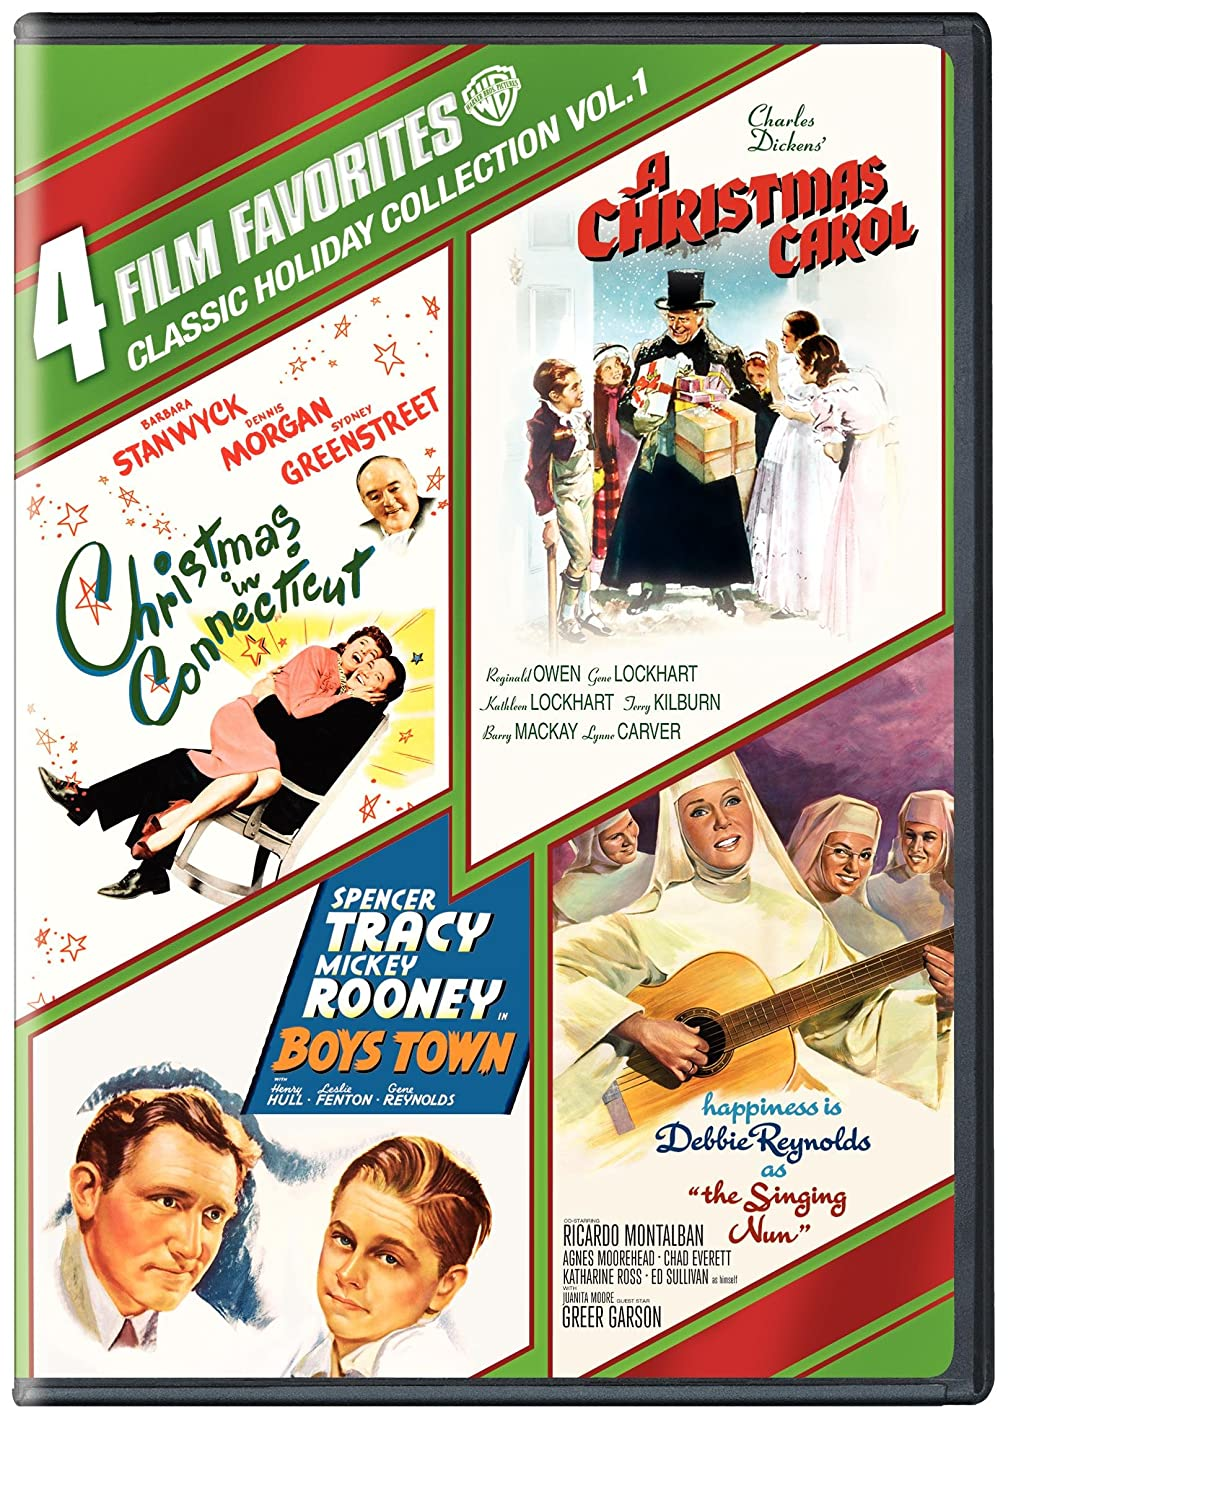 4 Film Favorites: Classic Holiday - Volume 1 (Boys Town / A Christmas Carol / Christmas in Connecticut / The Singing Nun)